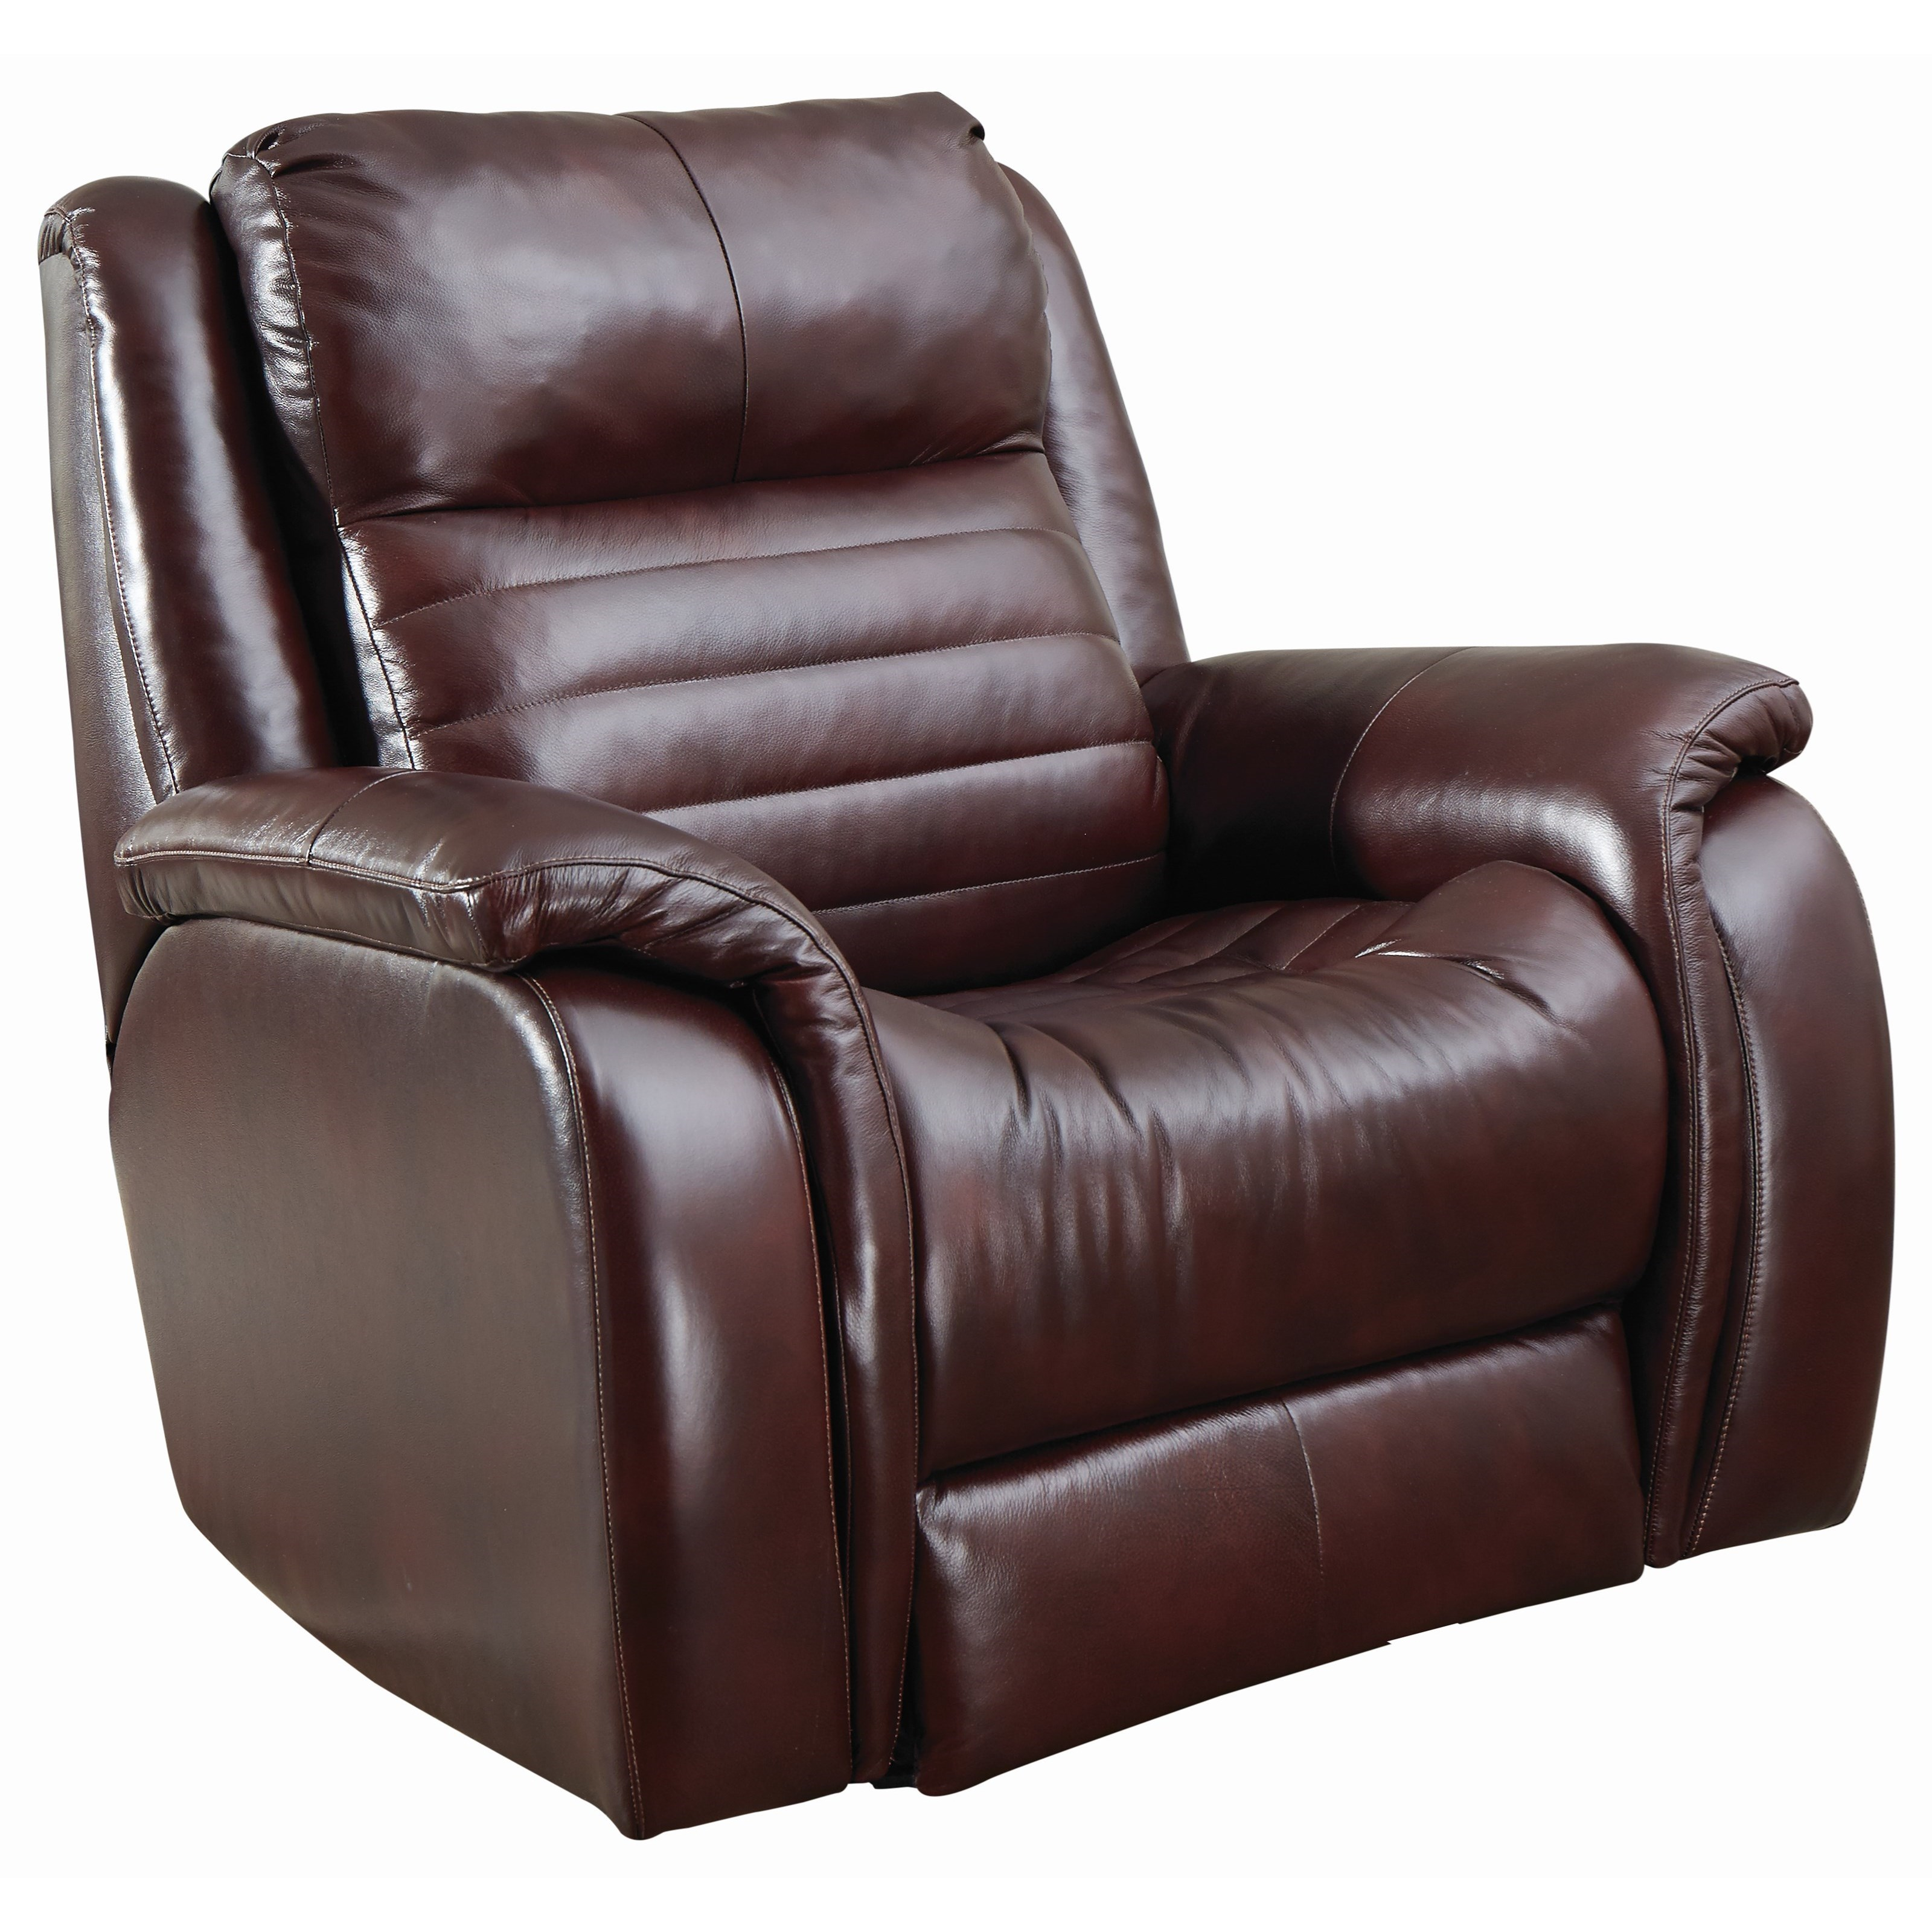 Essex Power Rocker Recliner by Southern Motion at Sparks HomeStore